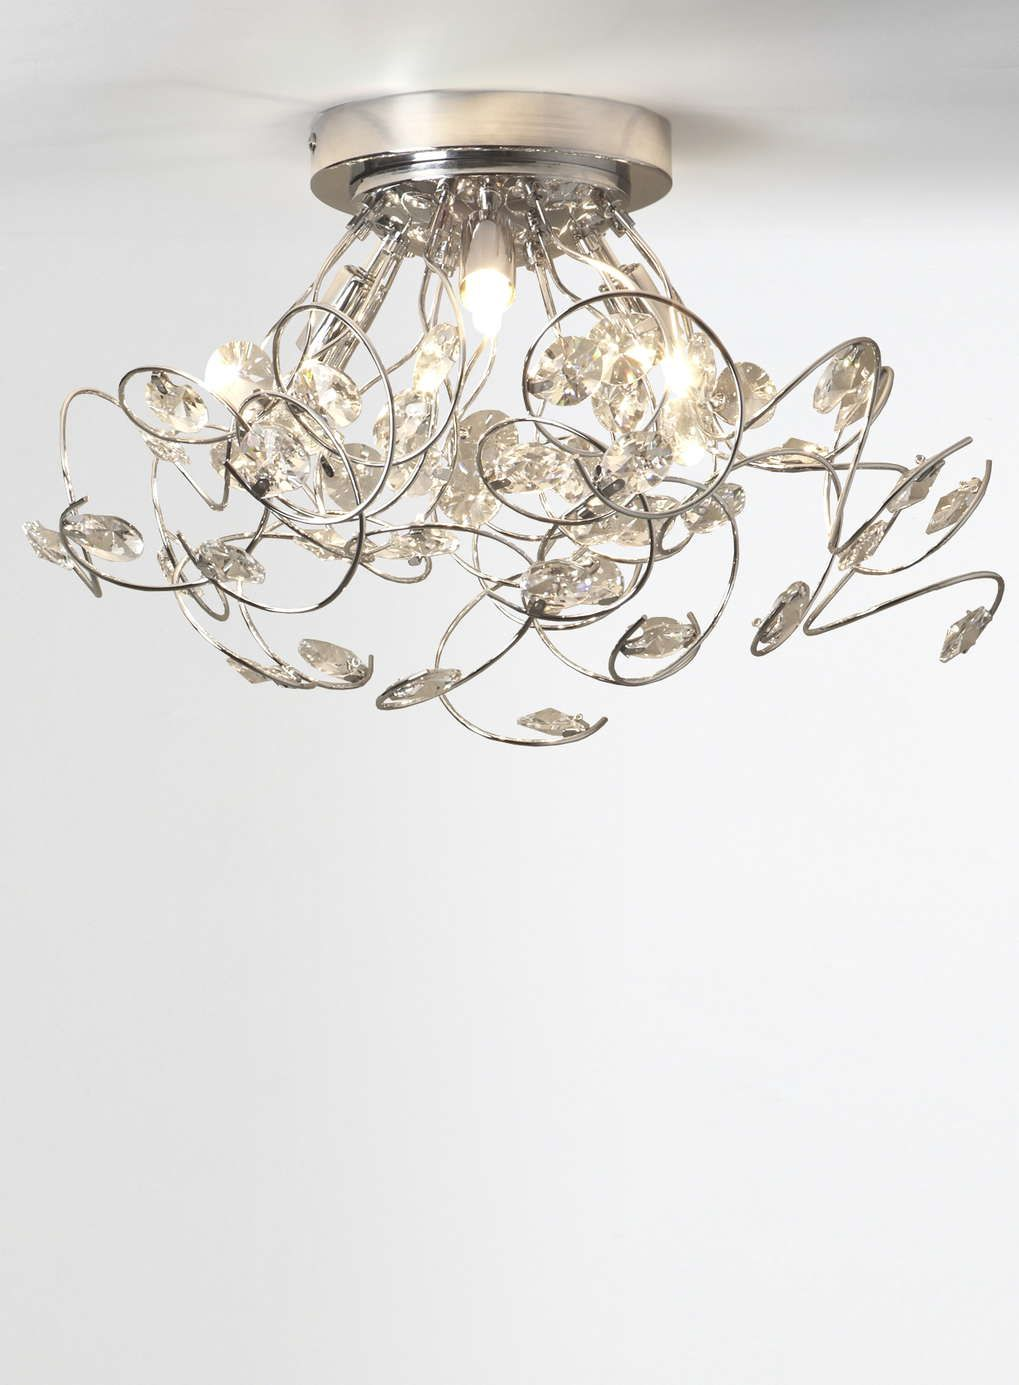 Sienna Ceiling Light Bhs : Lila flush ceiling light bhs living room